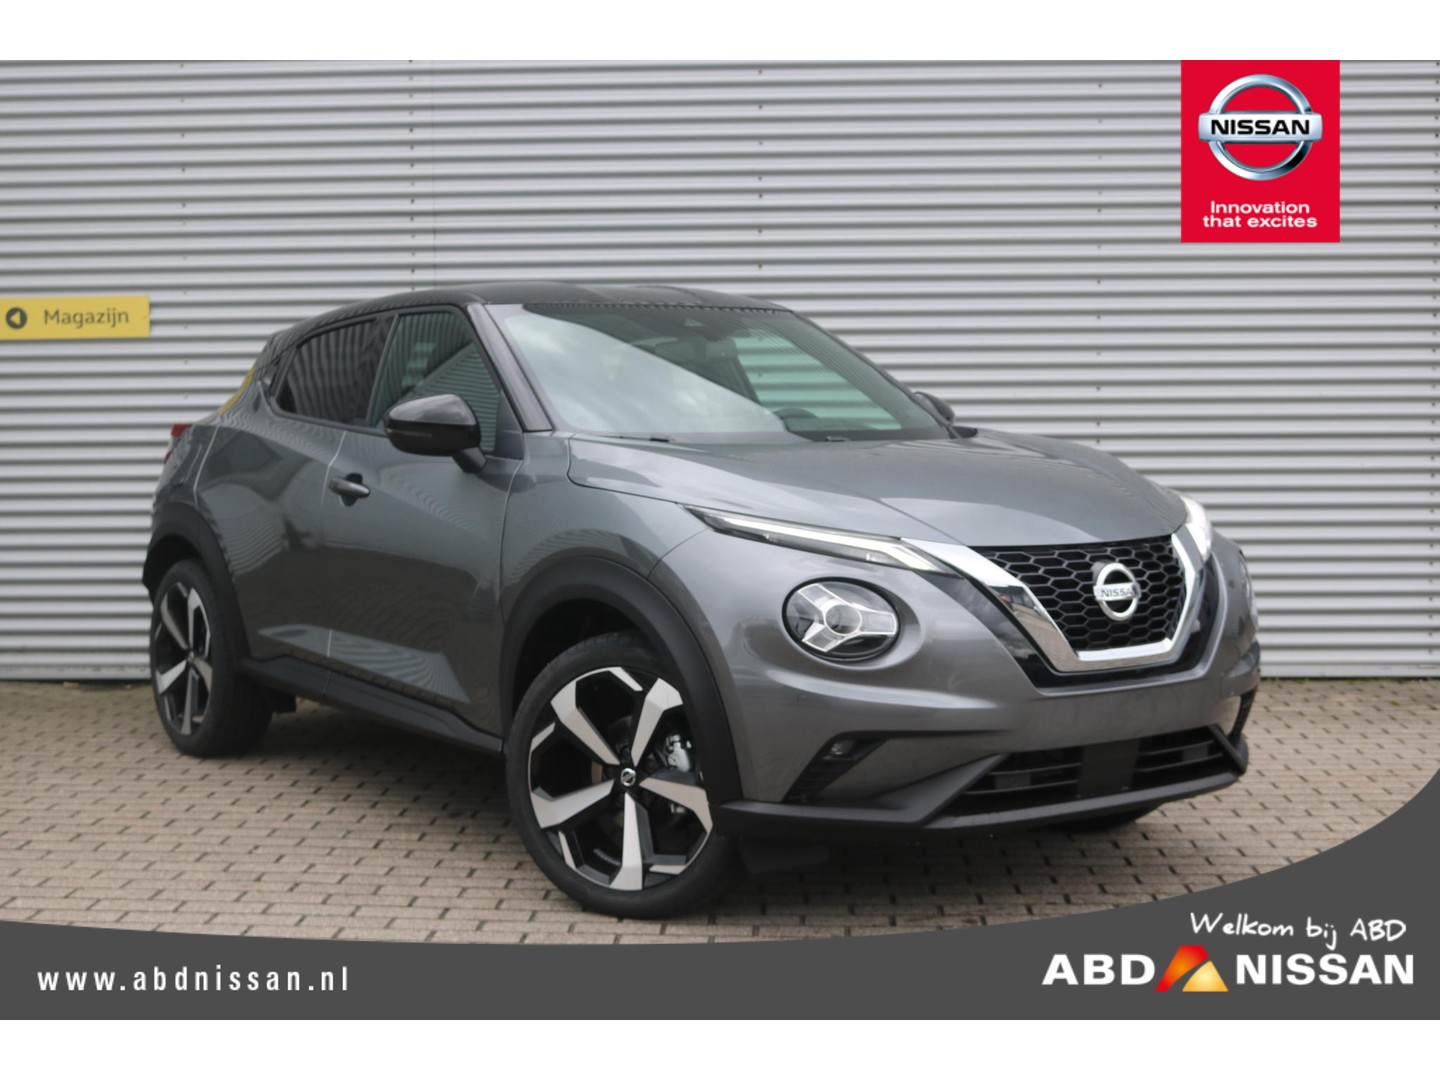 Nissan Juke 1.0 dig-t premiere edition automaat